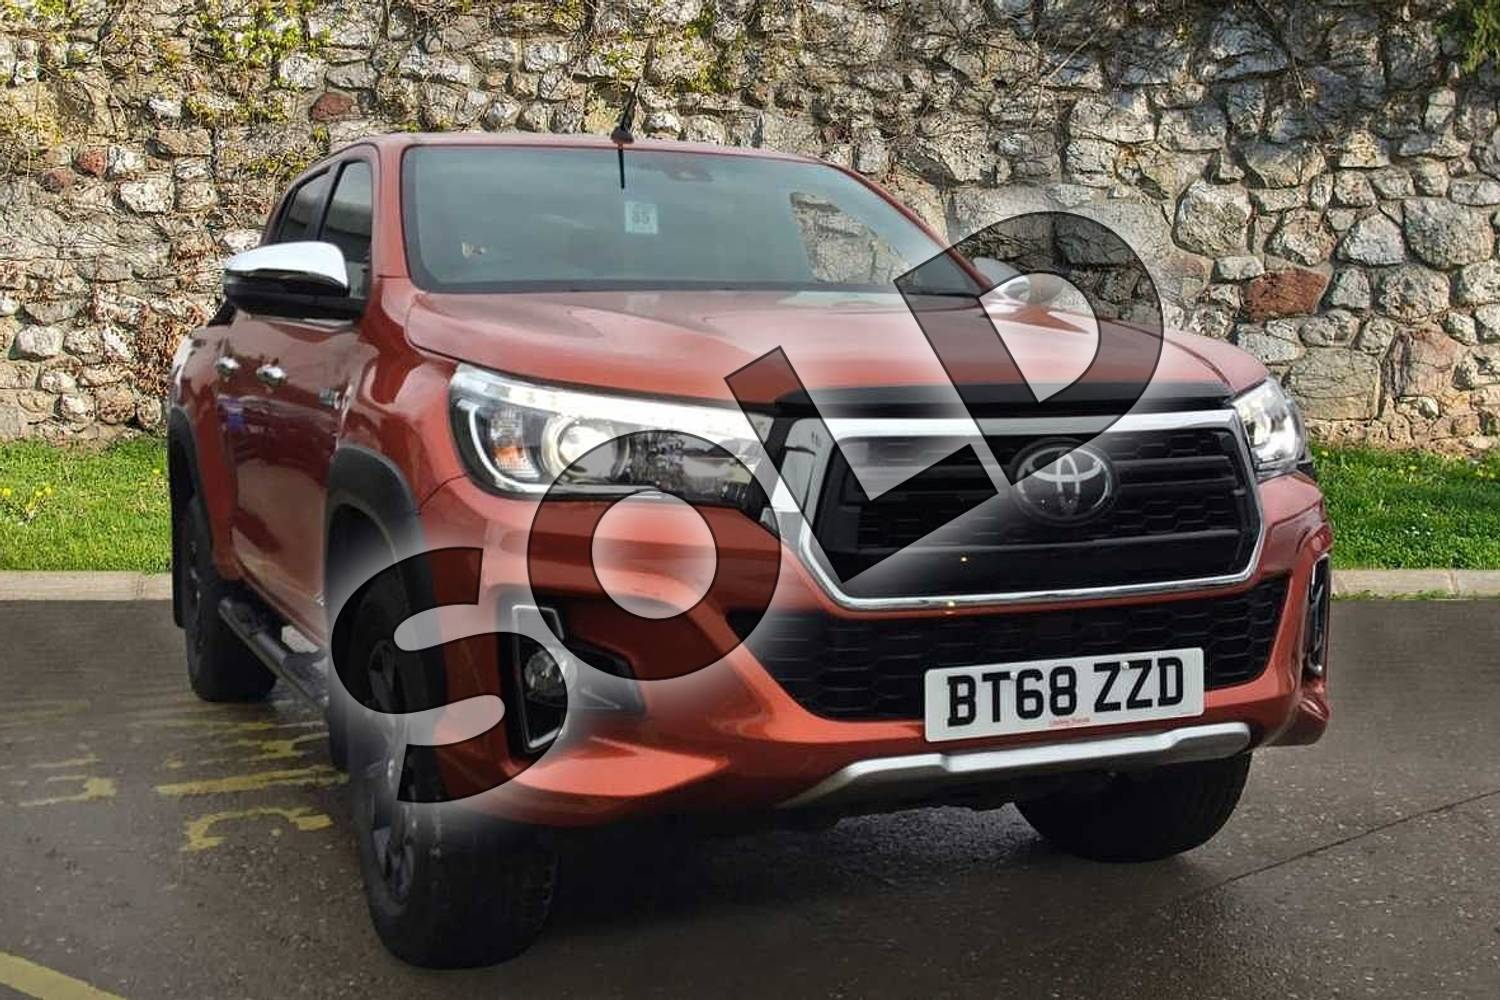 2019 Toyota Hilux Special Editions Special Editions Invincible X Ltd Edn D/Cab Pick Up 2.4 D-4D Auto in scorched orange at Listers Toyota Coventry